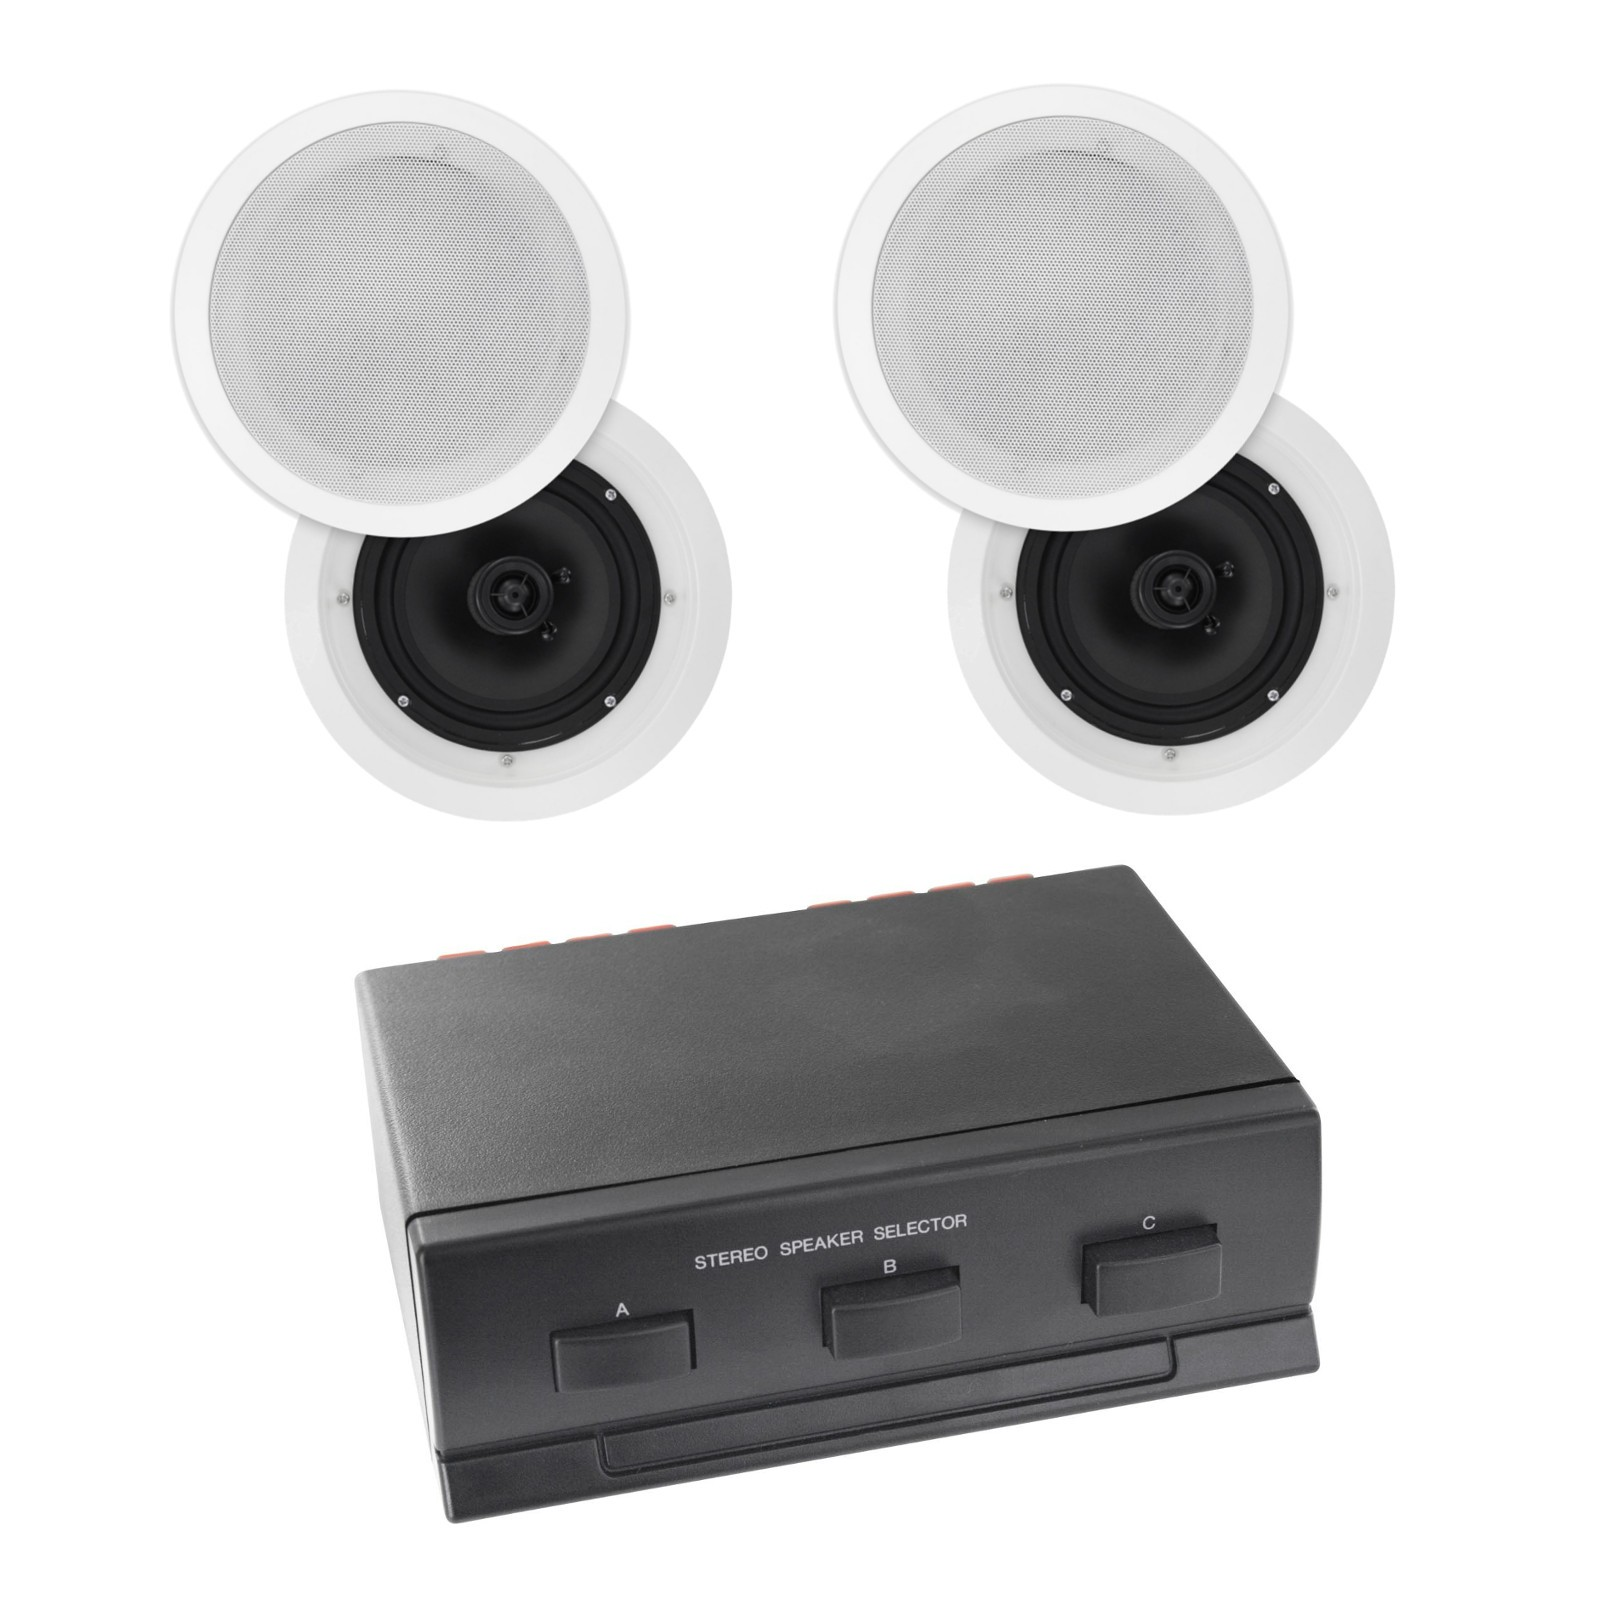 Generic Bun900031 2 Zone 4 Speaker Pack With 6 5 Inch In Ceiling Speakers Poly Cone Bun900031